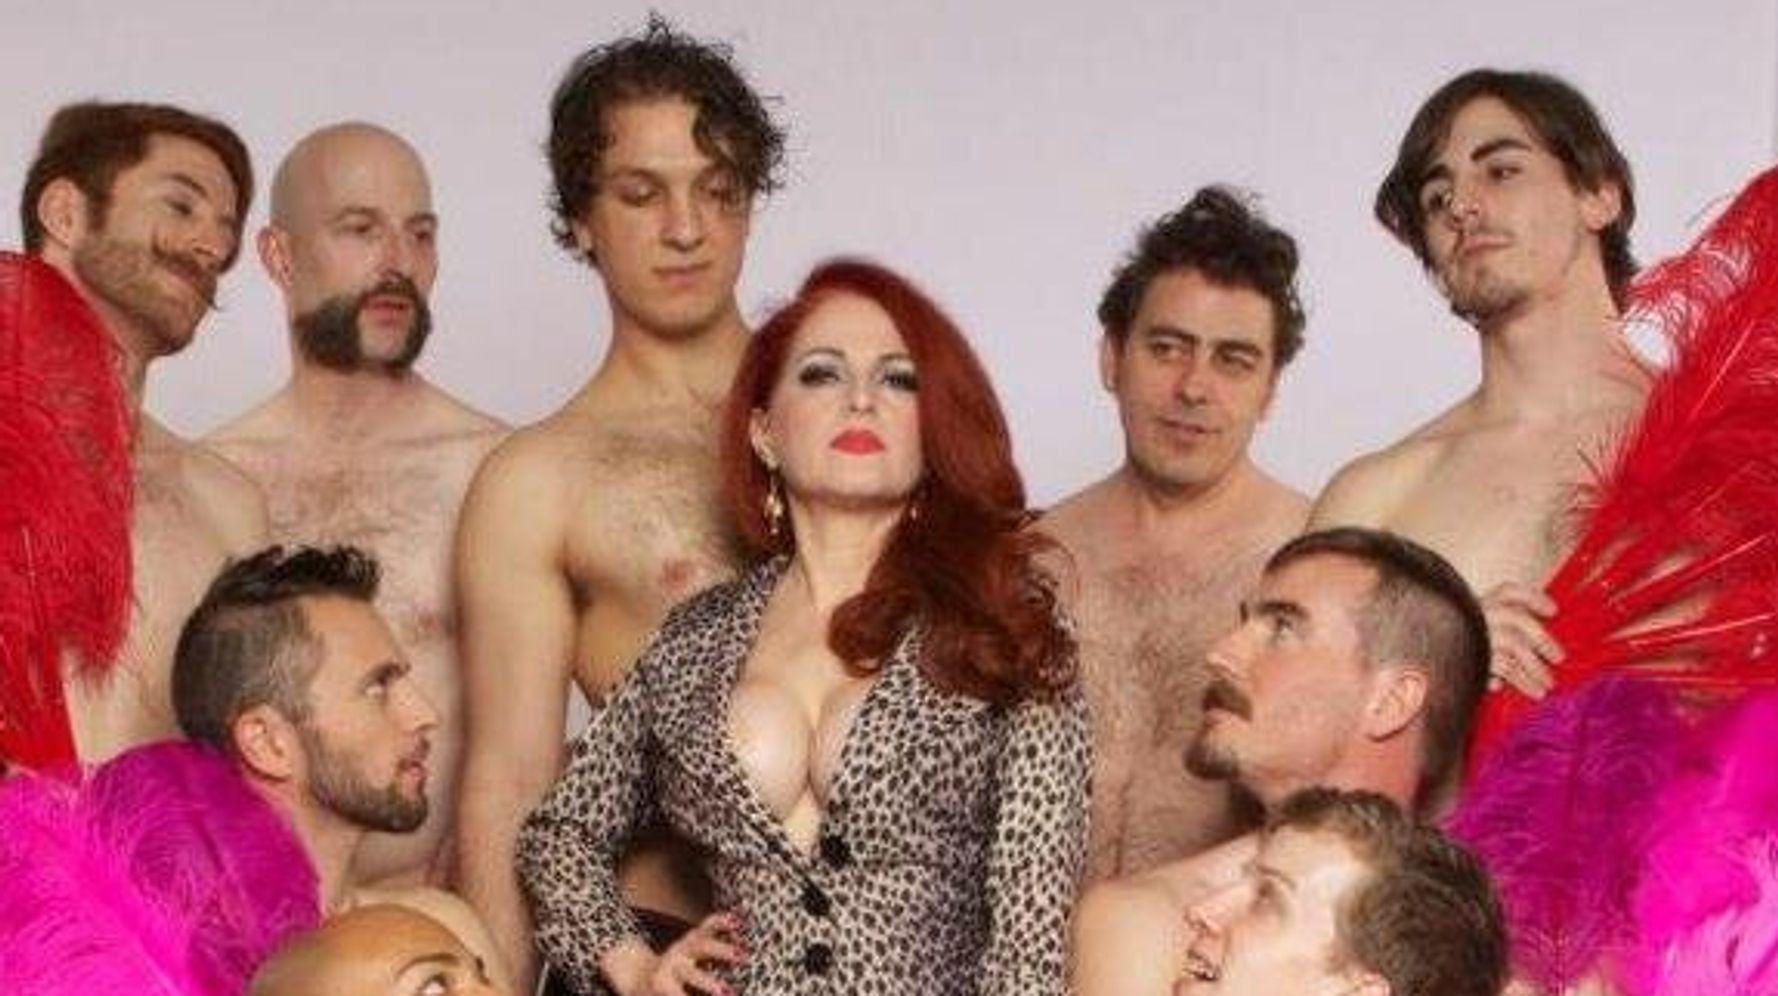 Why This Queer, Middle-Aged Burlesque Dancer Wants You To 'Be Shameless' Too